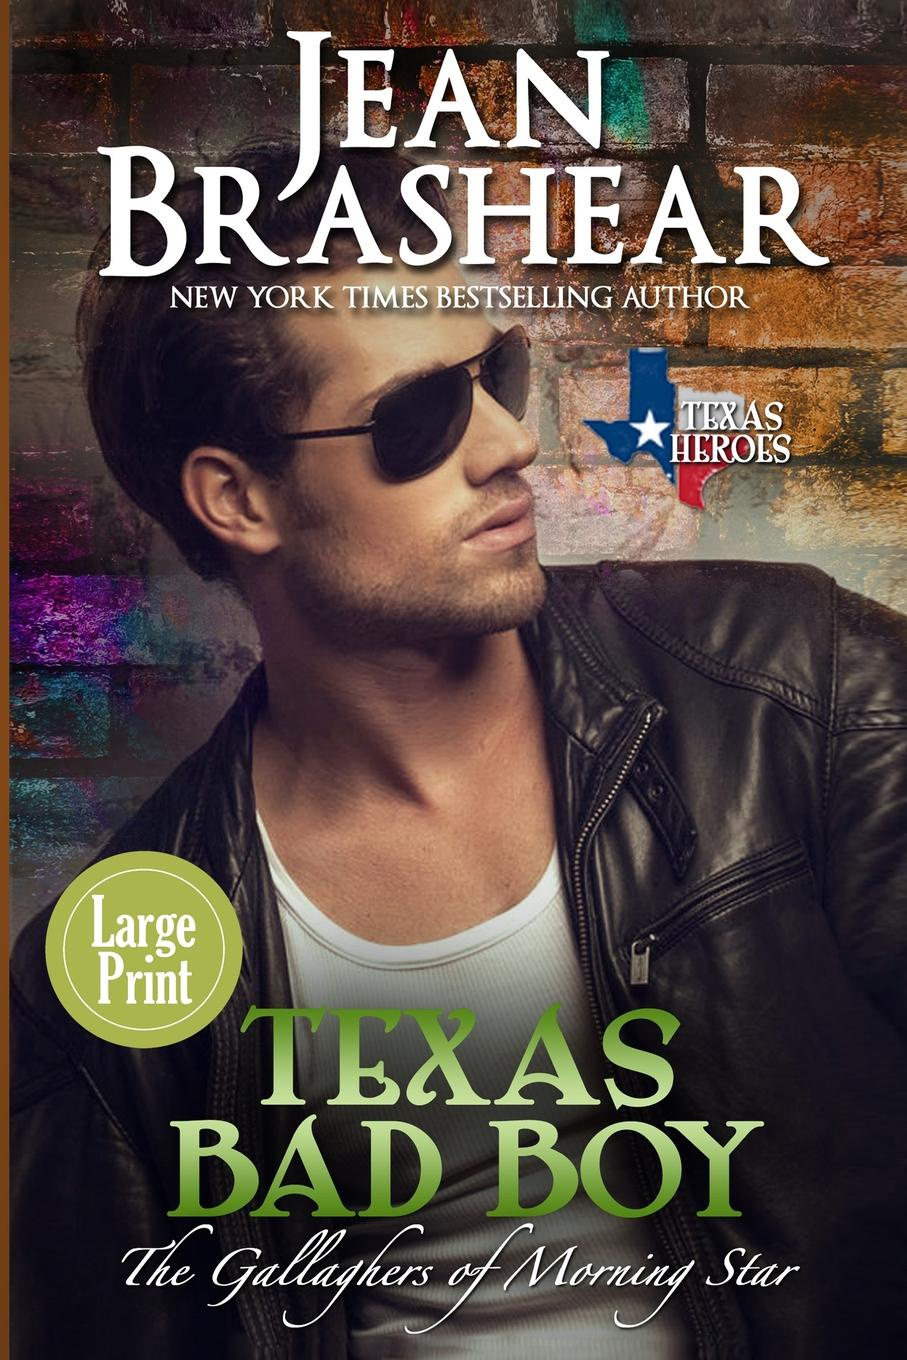 Jean Brashear Texas Bad Boy (Large Print Edition). The Gallaghers of Morning Star Book 3 ]make mine bad boy a deep in the heart of texas